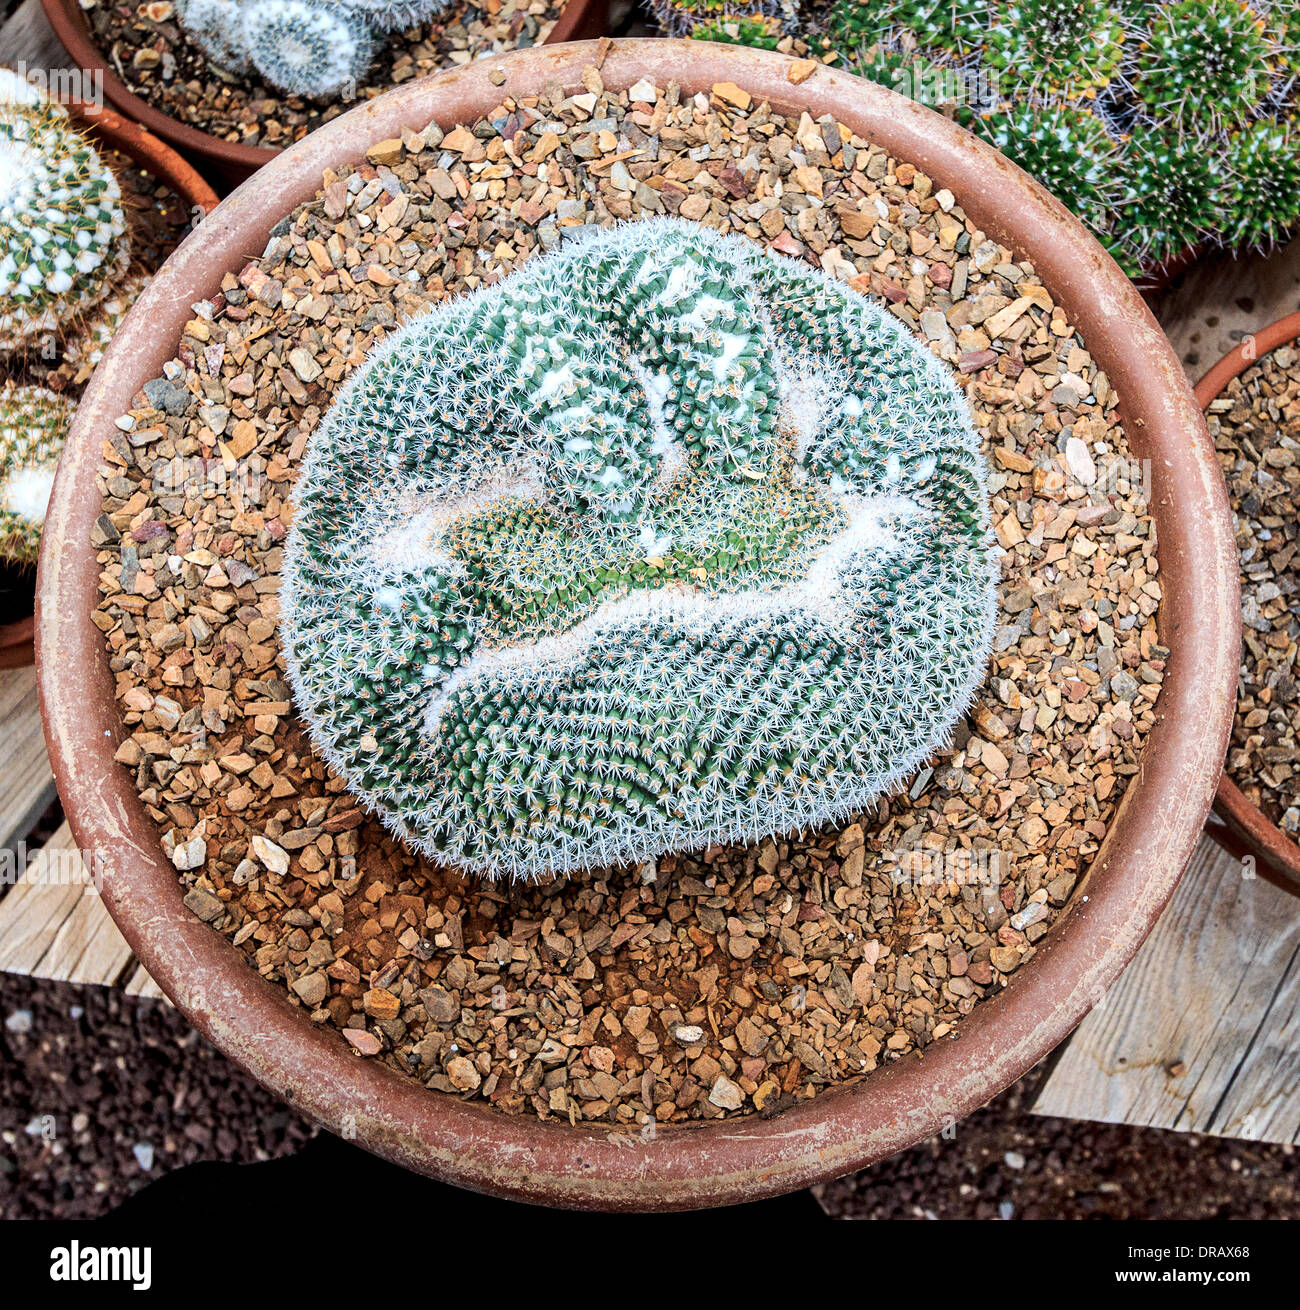 crested mammillaria parkinsonii, a cactus native to southern areas of Mexico. It's hardy in heat and cold. - Stock Image